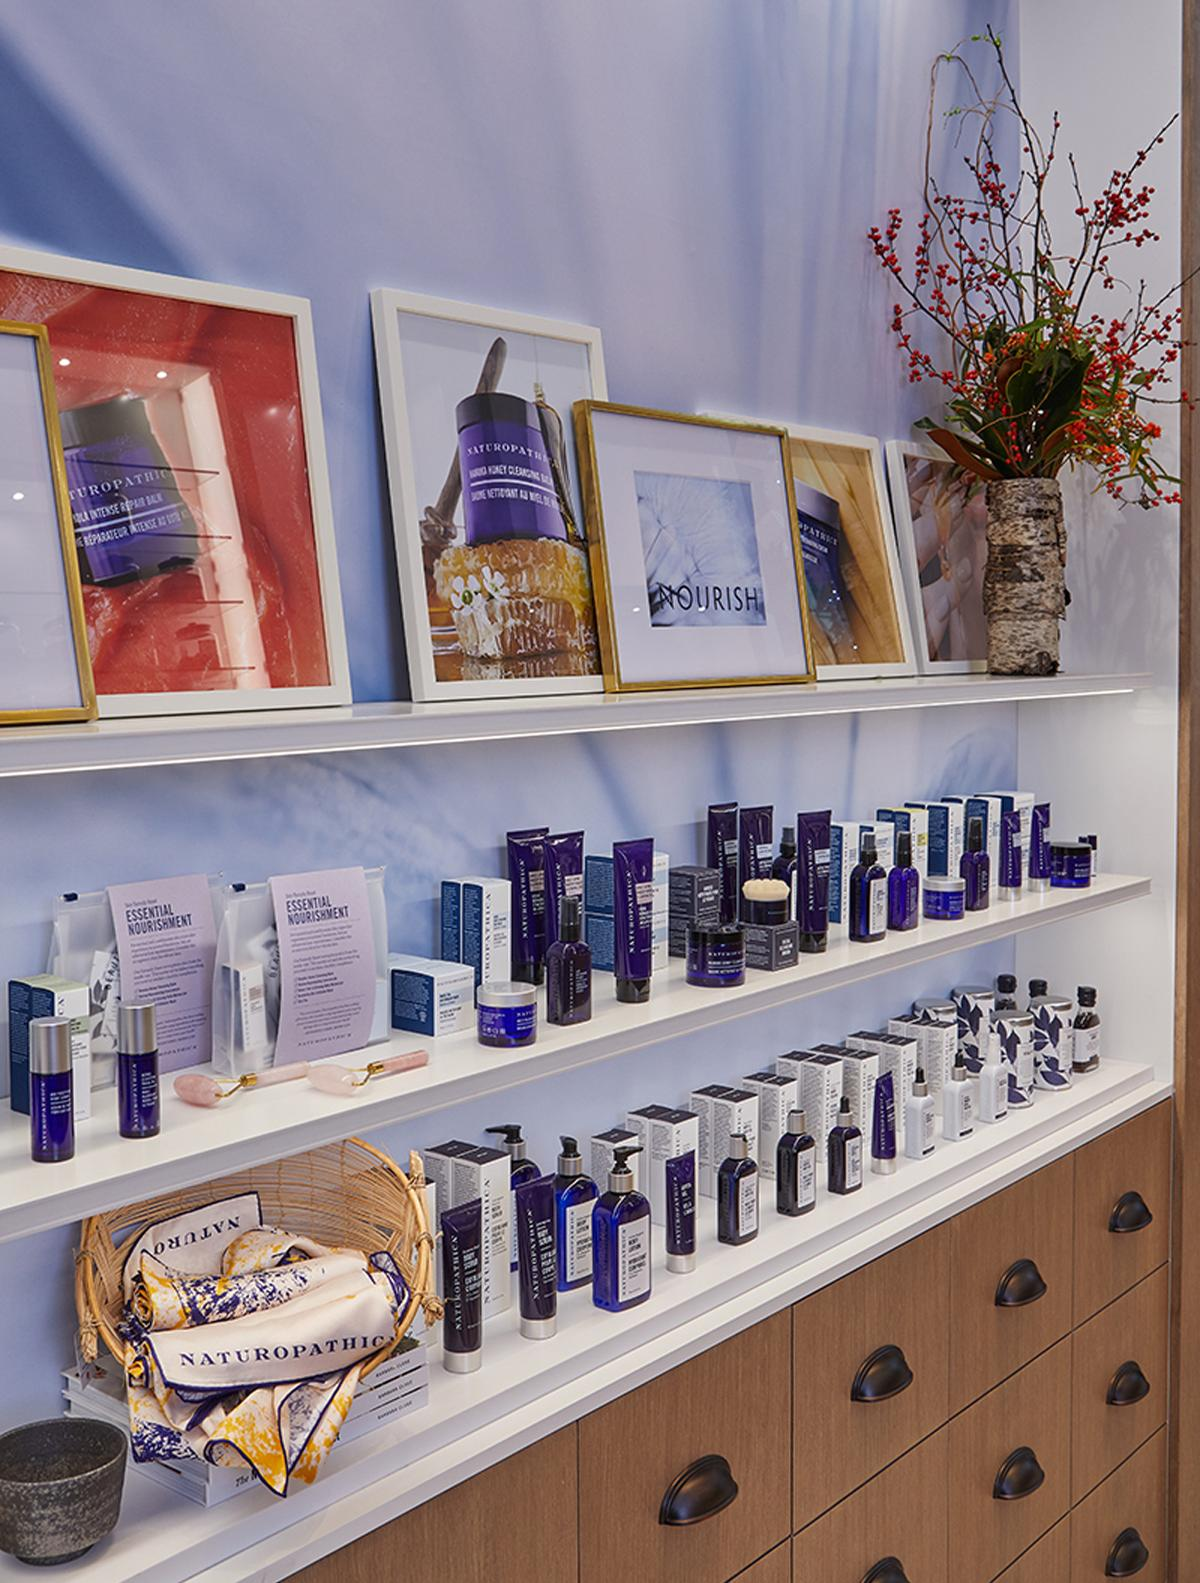 Visitors to the wellness centre may browse the brand's professional strength skincare products which are organised by practice: Clear, Nourish, Defy and Chill